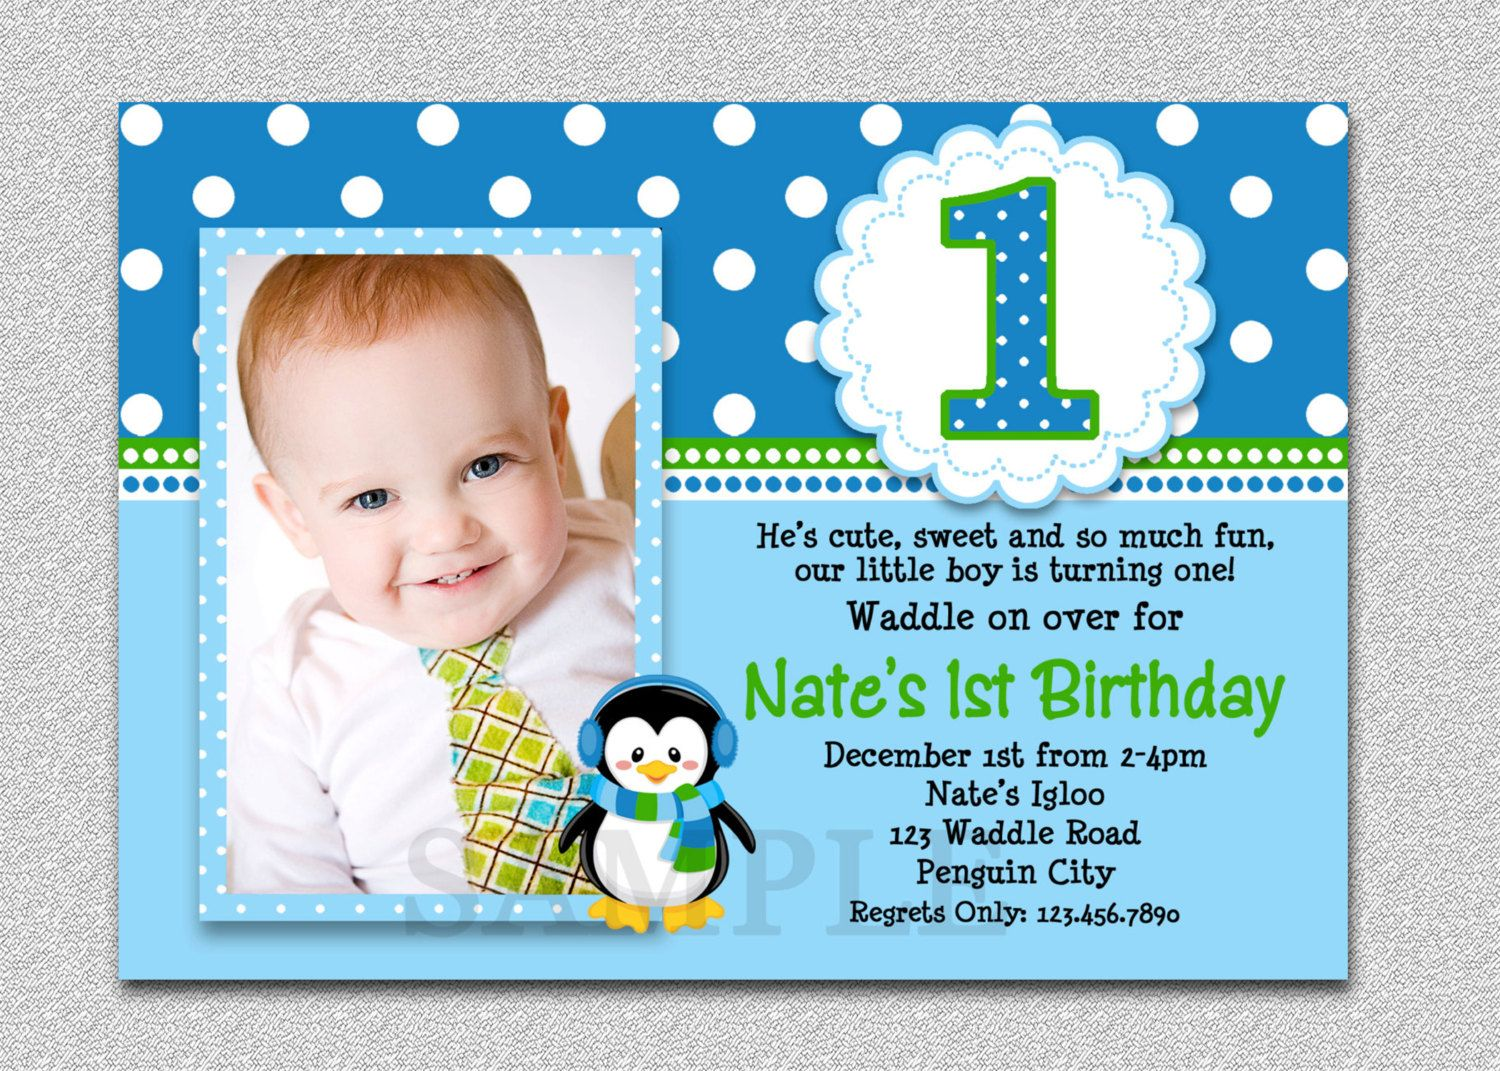 Cool The 1st Birthday Invitations Boy Ideas Check More At Http Www